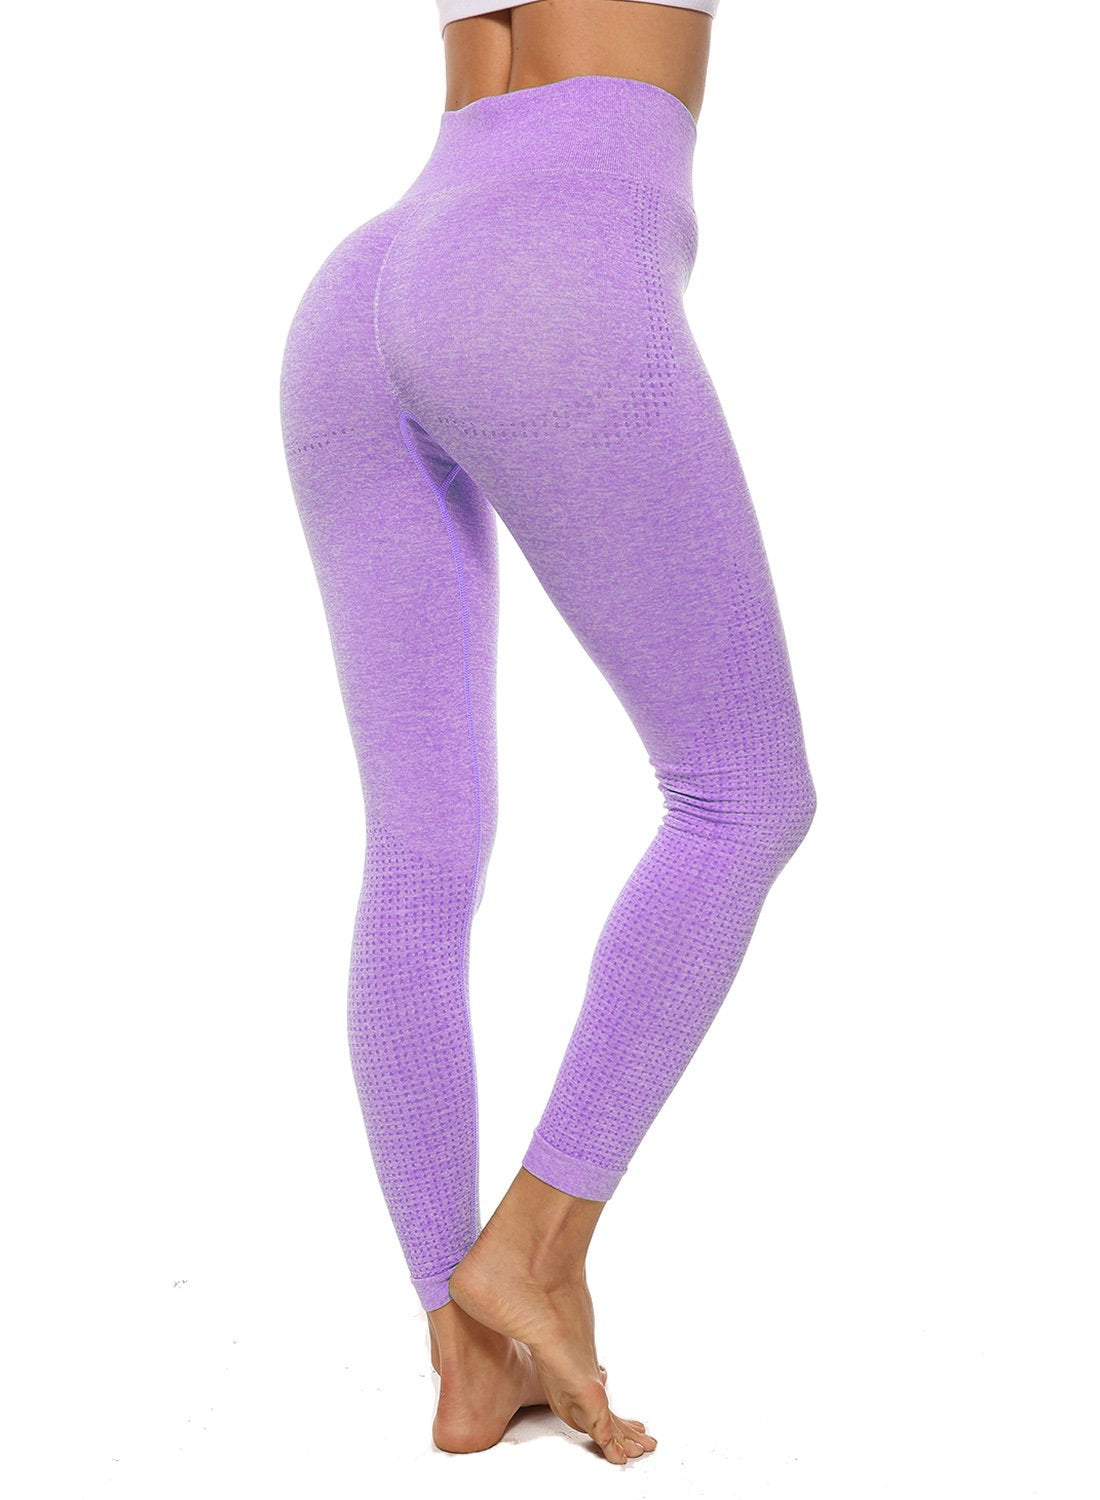 Women's Breathable Seamless Running Yoga Pants-JustFittoo